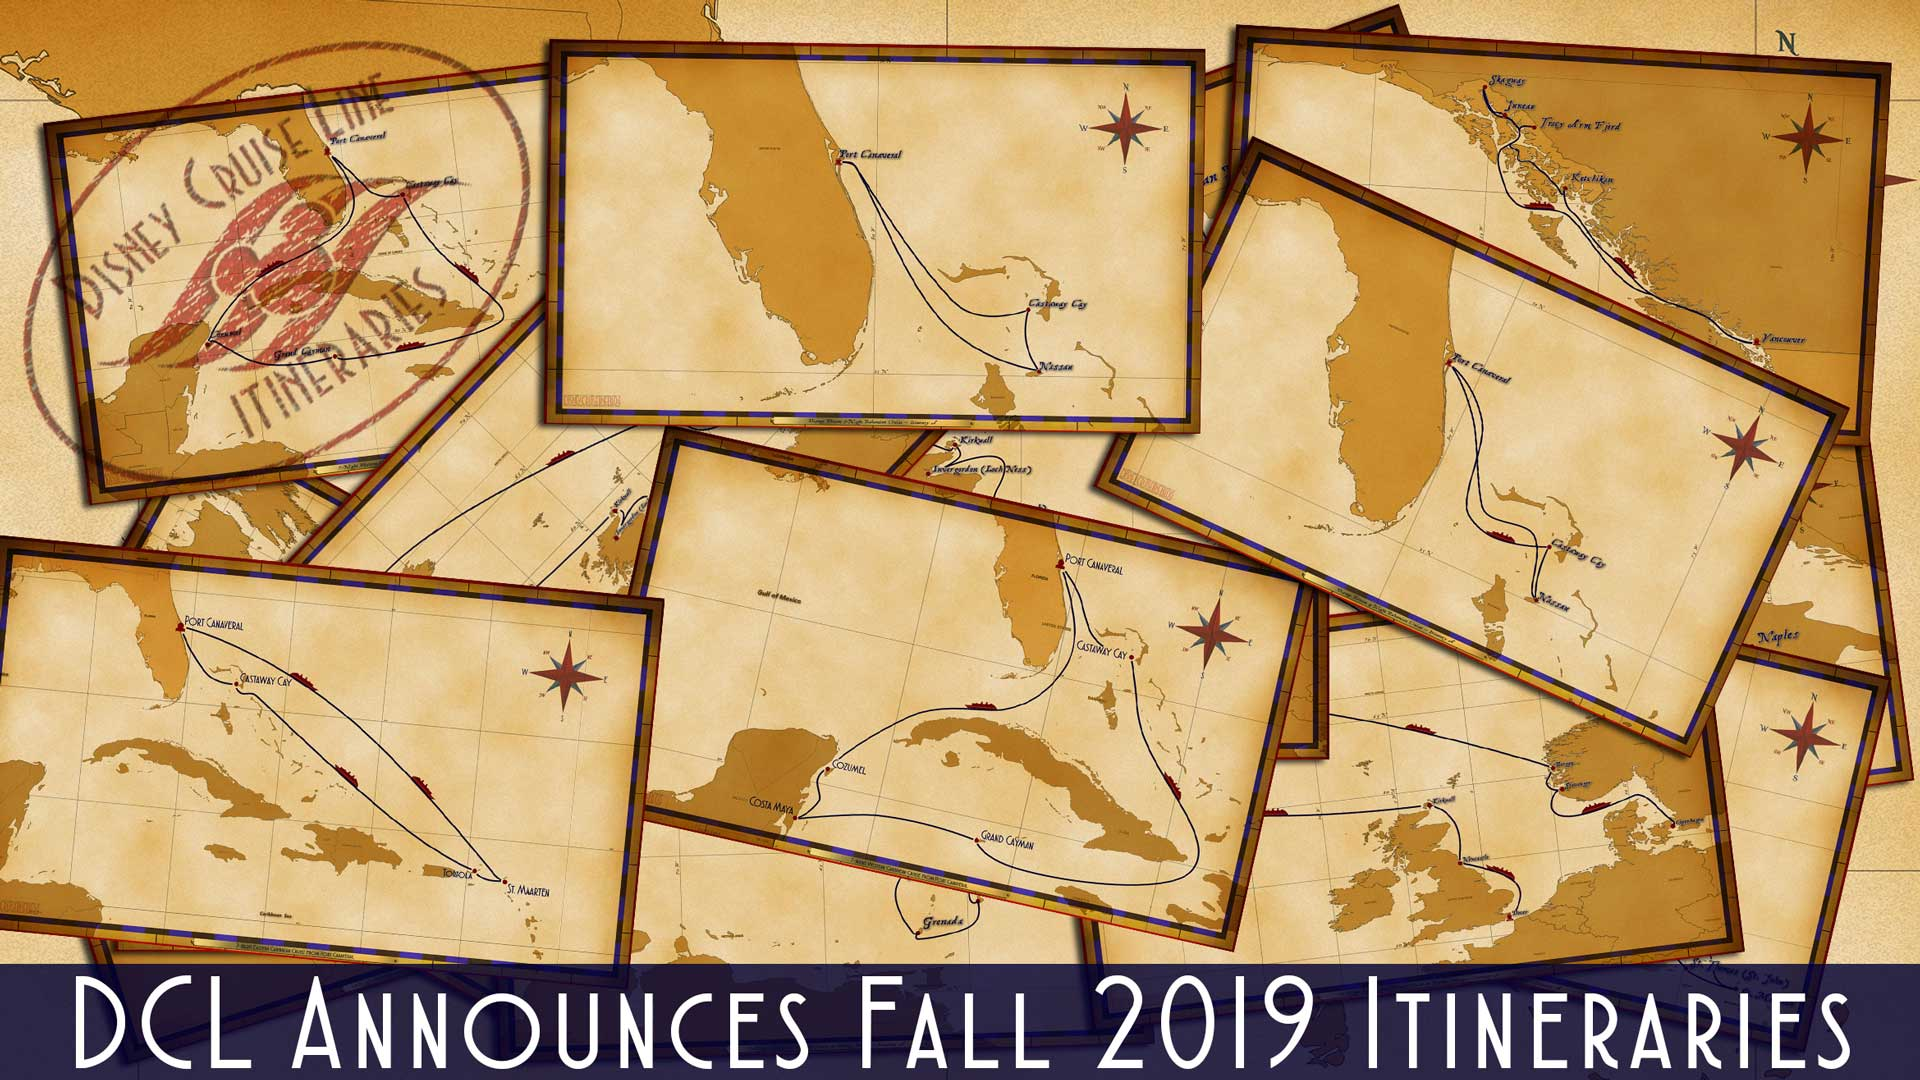 DCL Itinerary Release Fall 2019